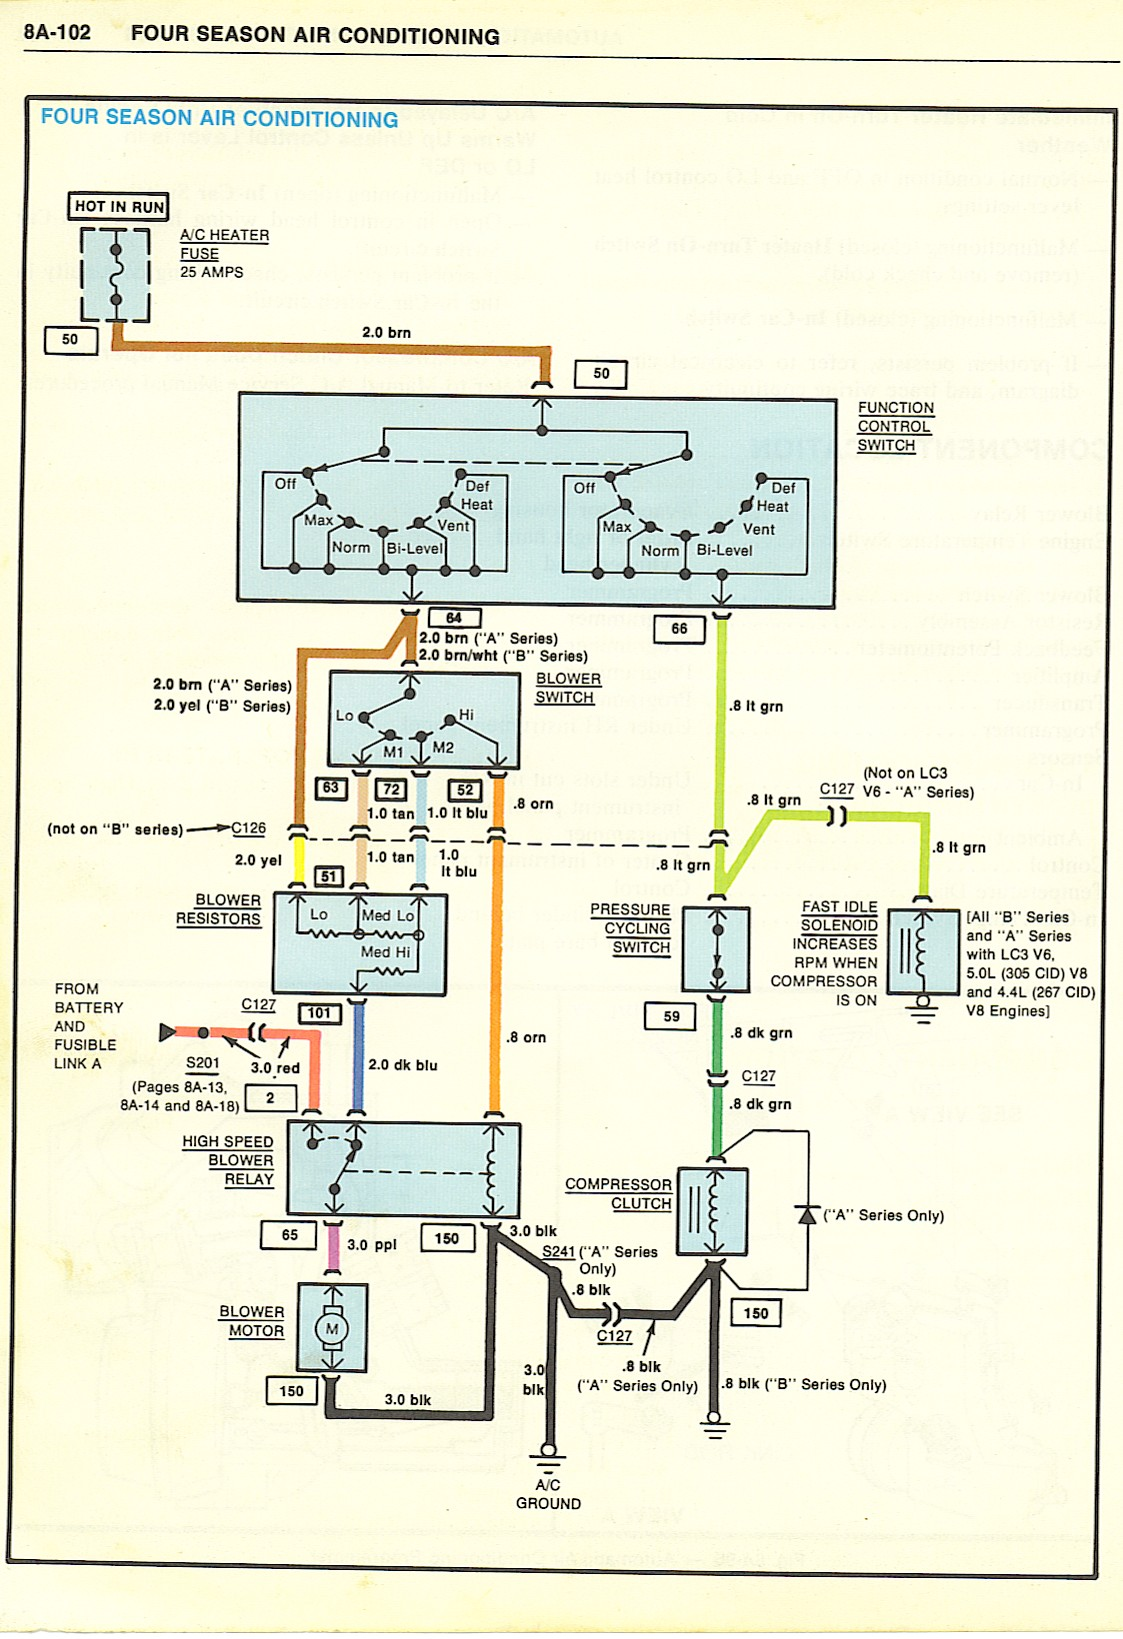 1972 chevelle ac wiring diagram 1999 ford f250 trailer brake 72 el camino radio get free image